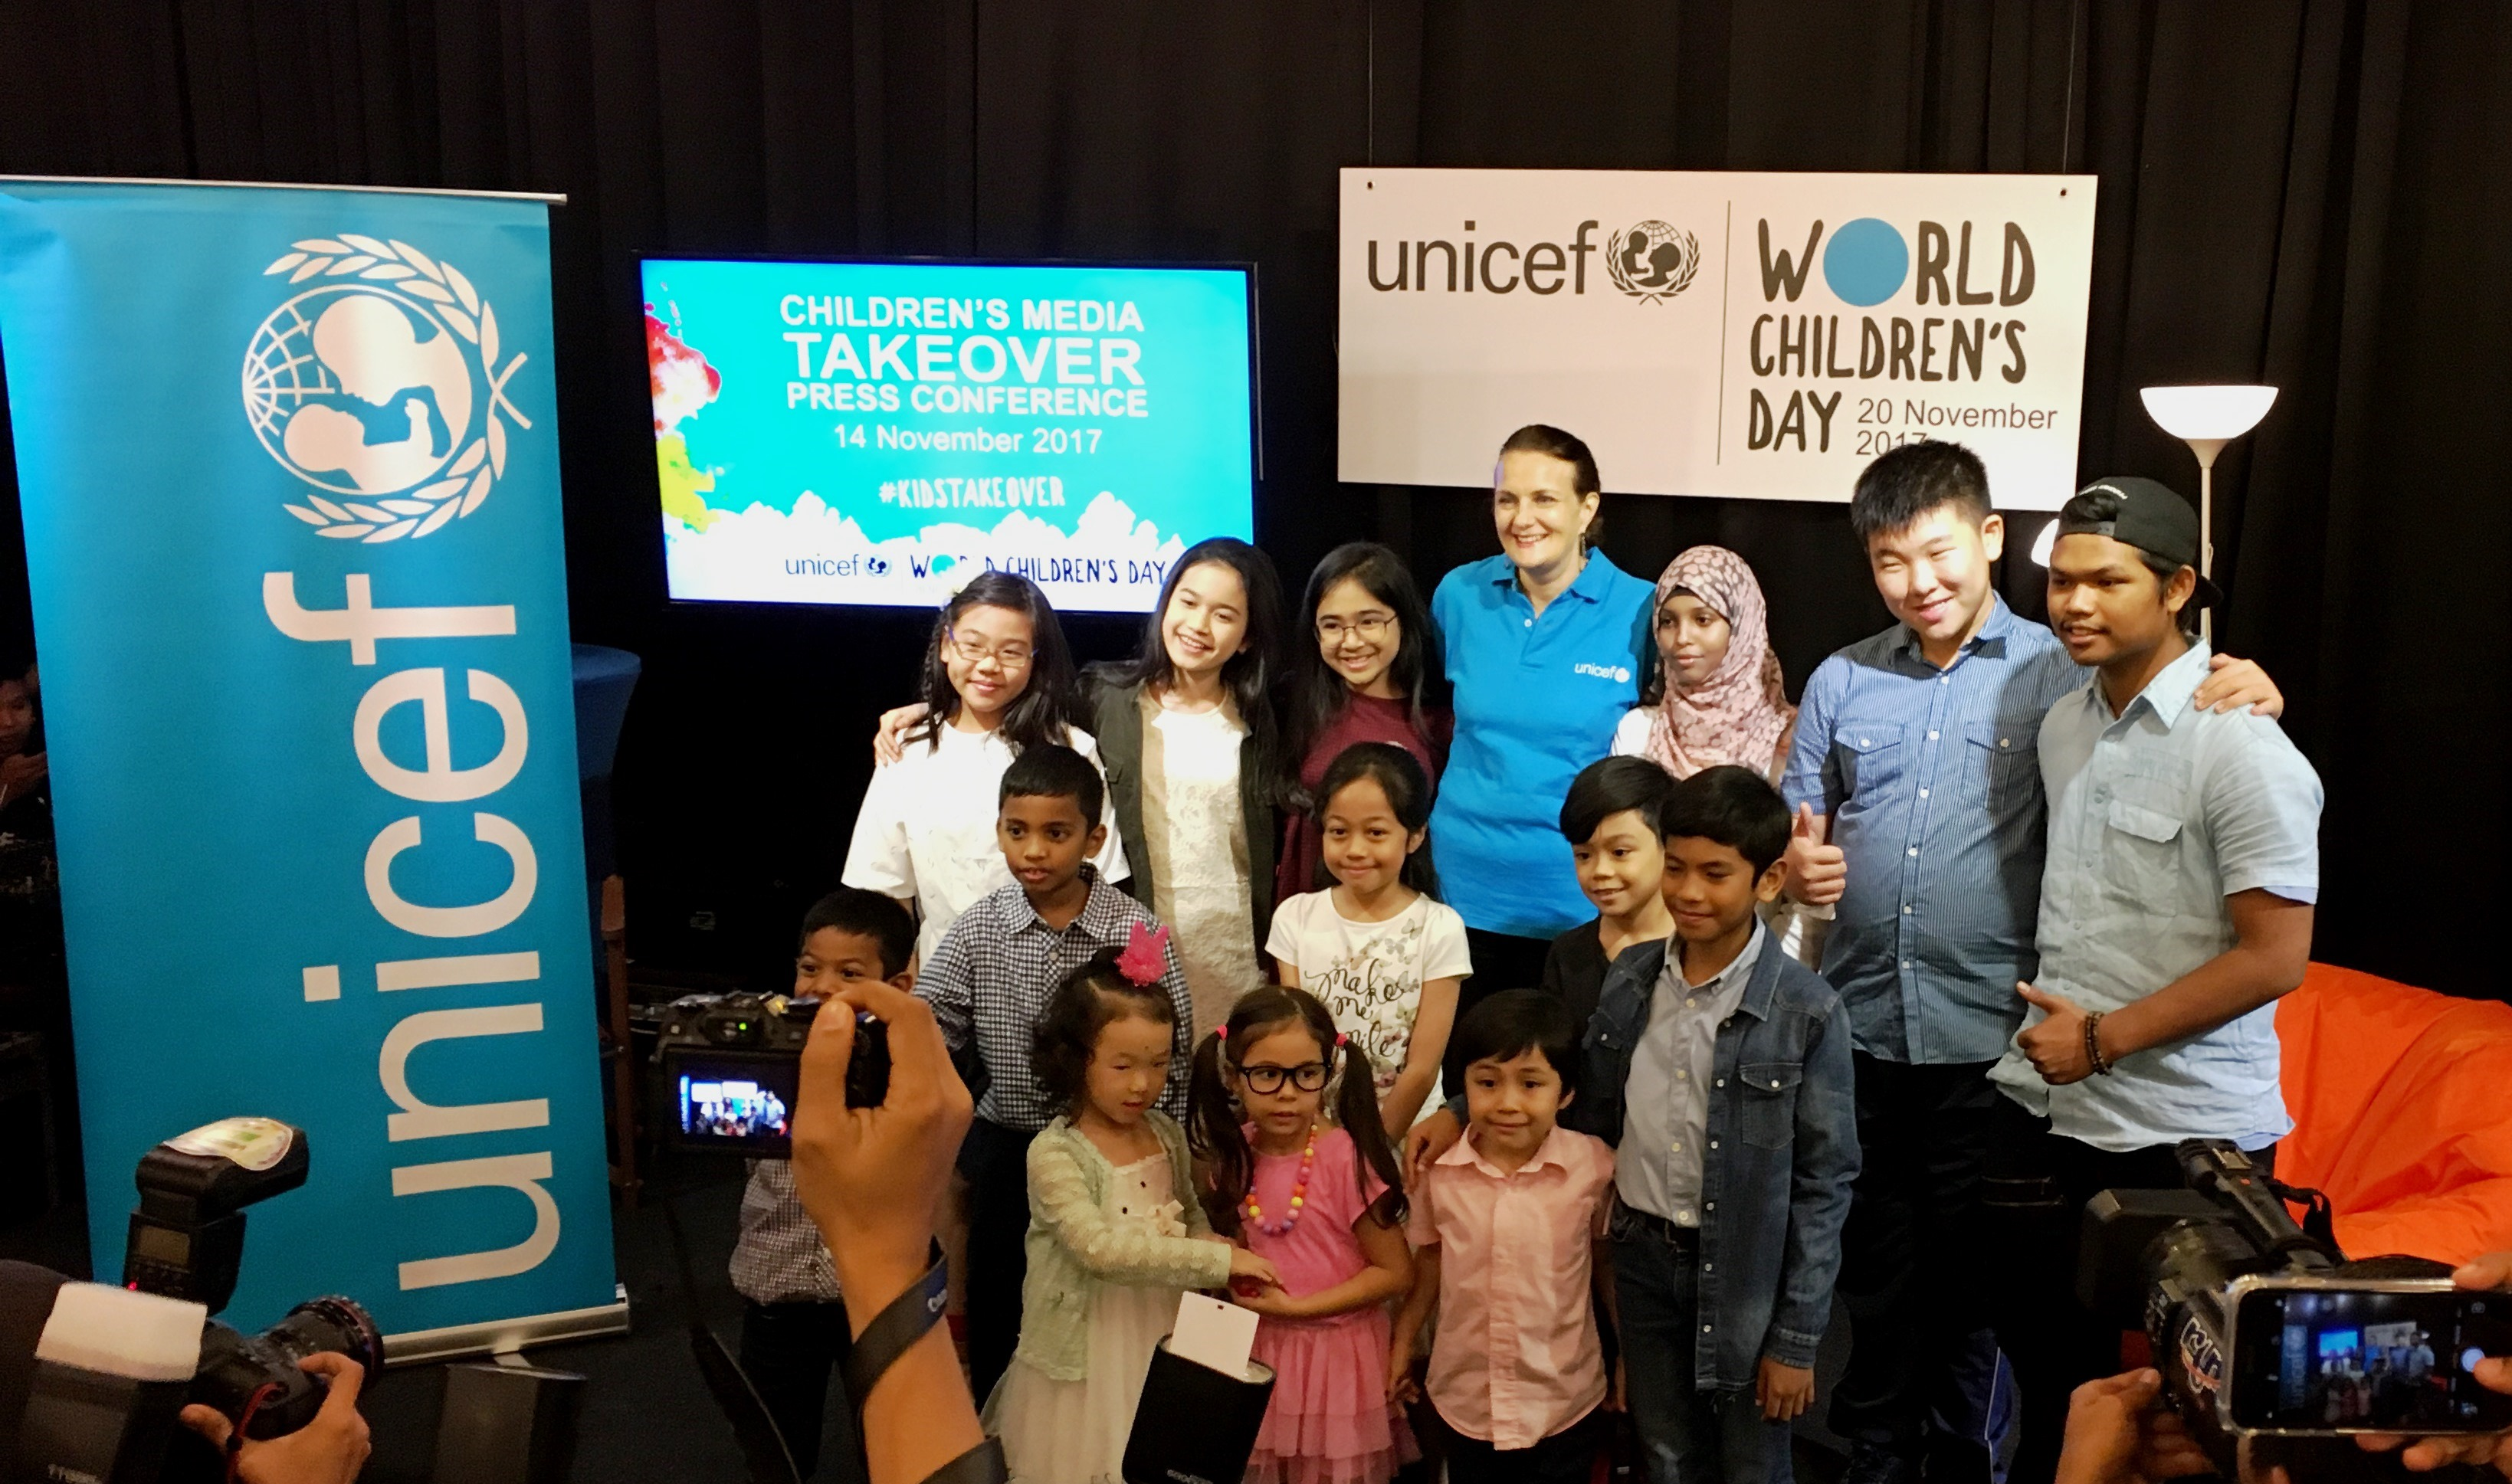 Children involved in Children's Media Takeover Press Conference with Marianne Clark-Hattingh, UNICEF Representative Malaysia